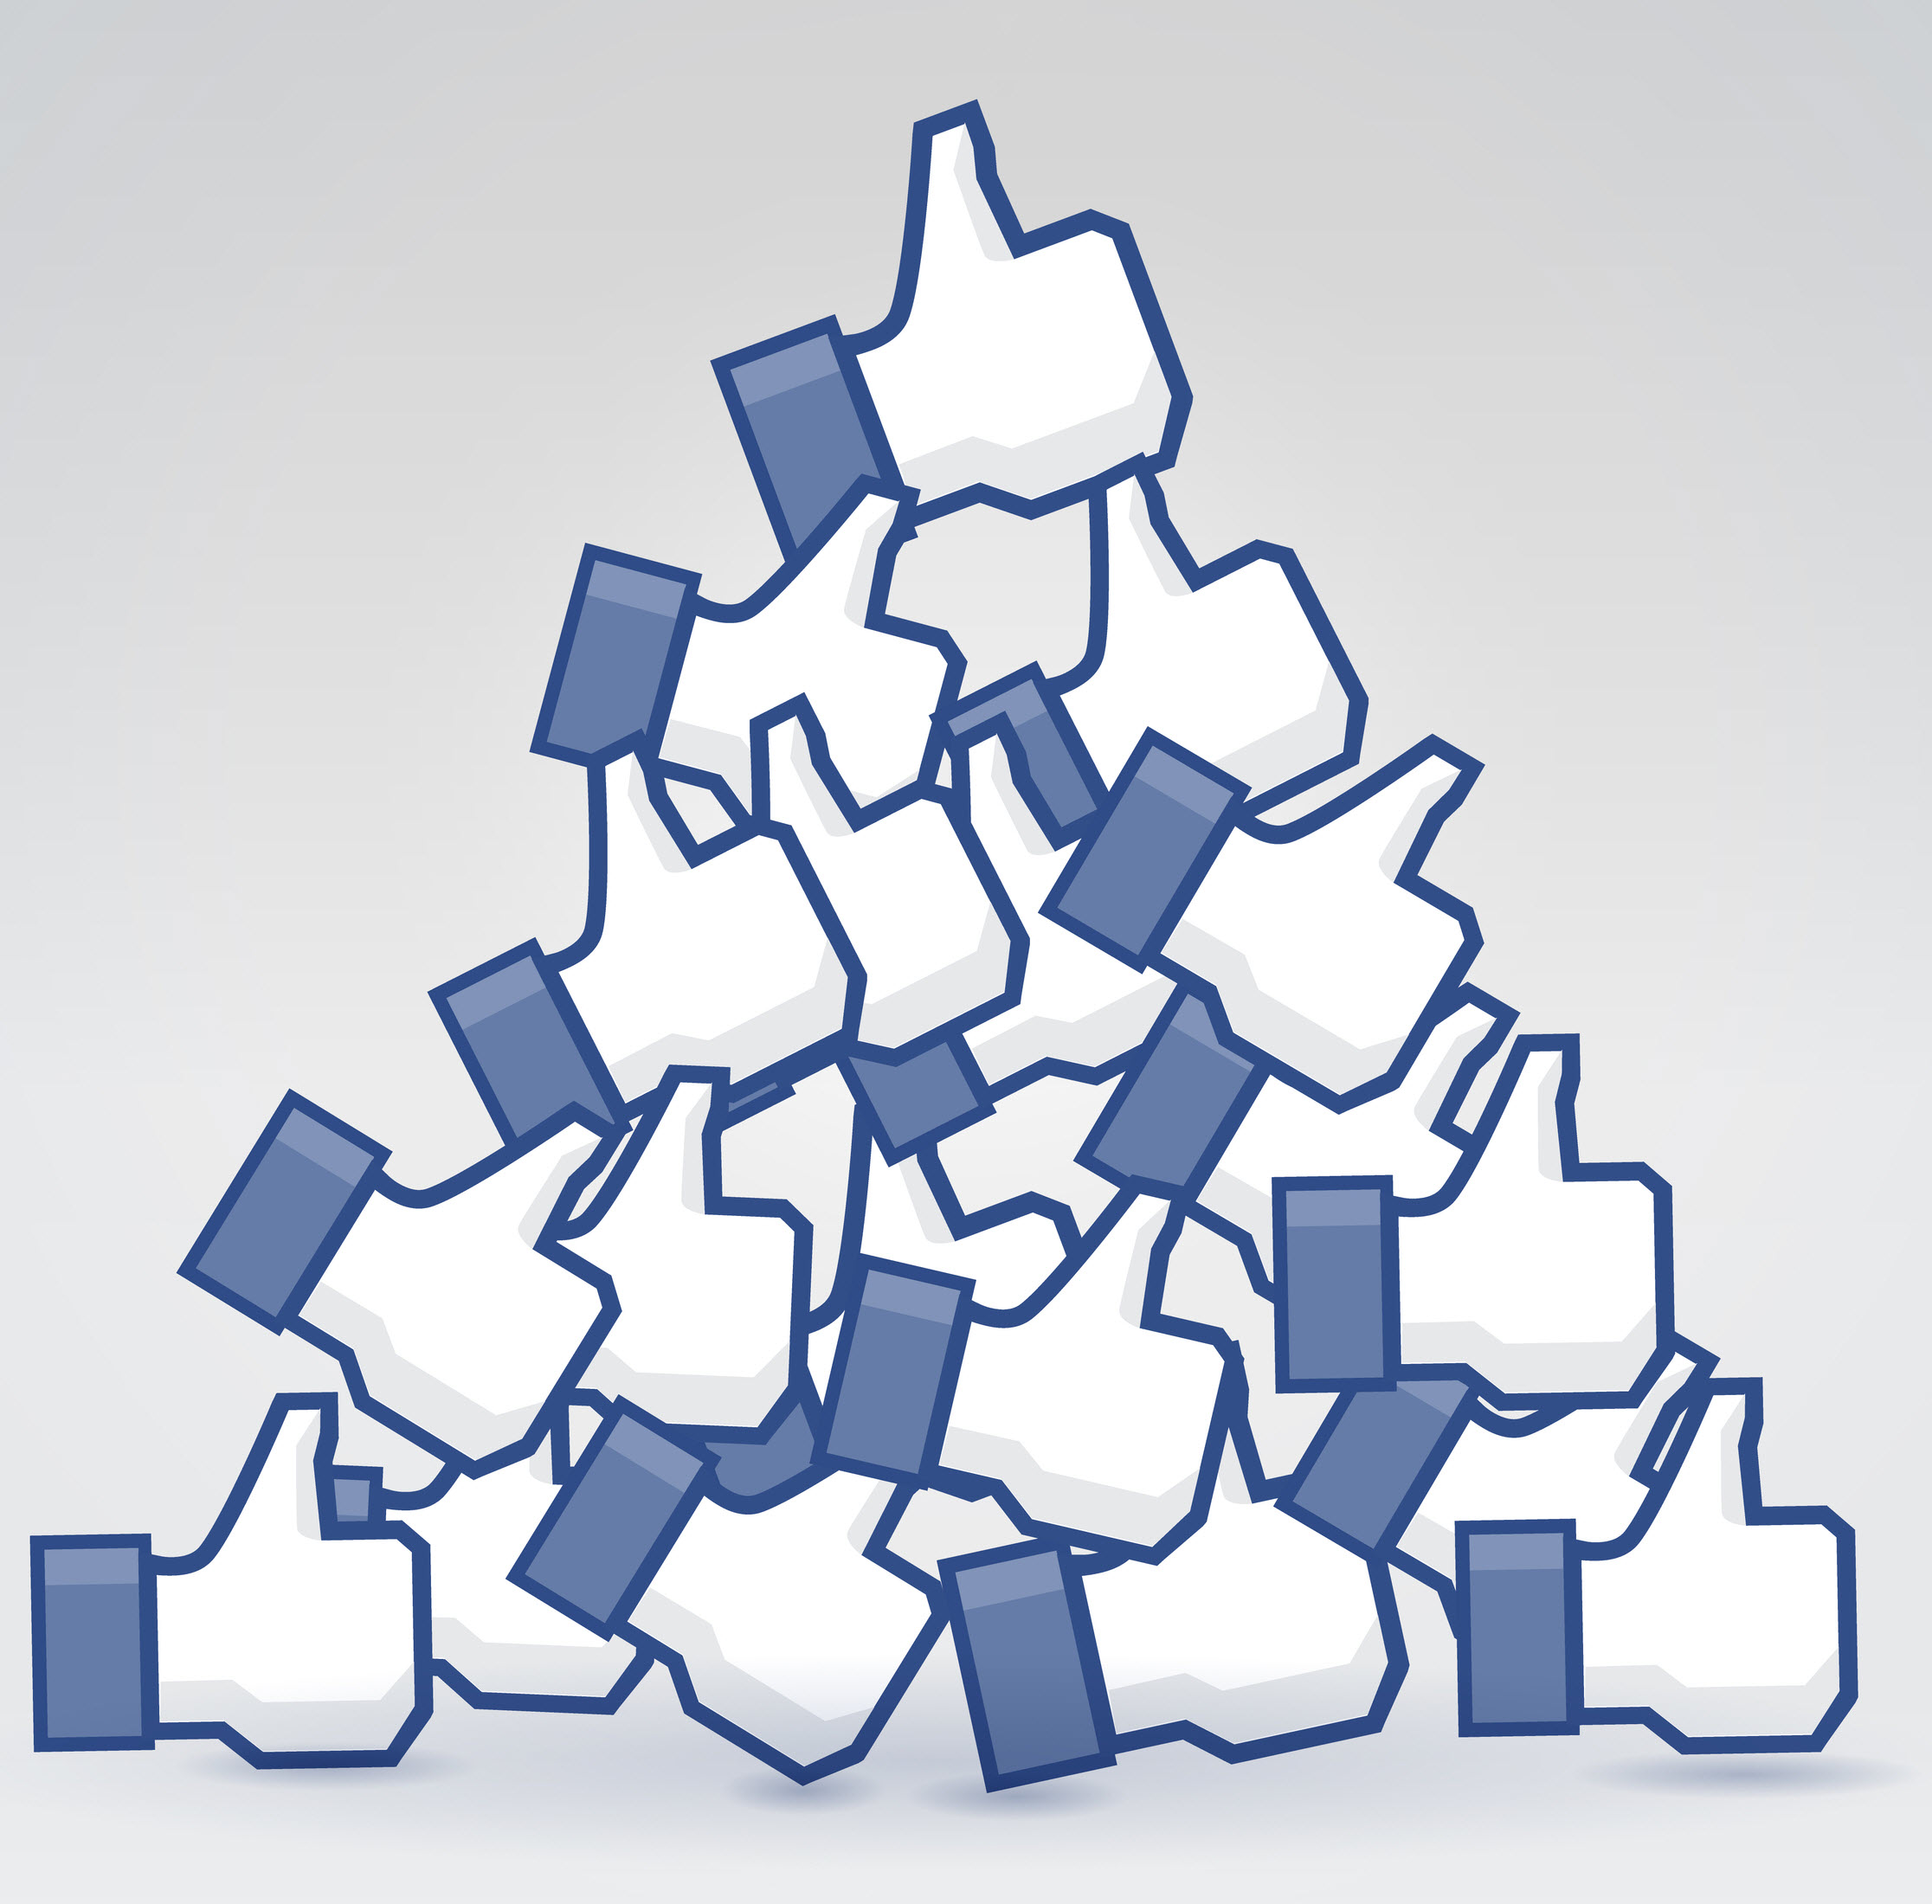 Likes-business-p